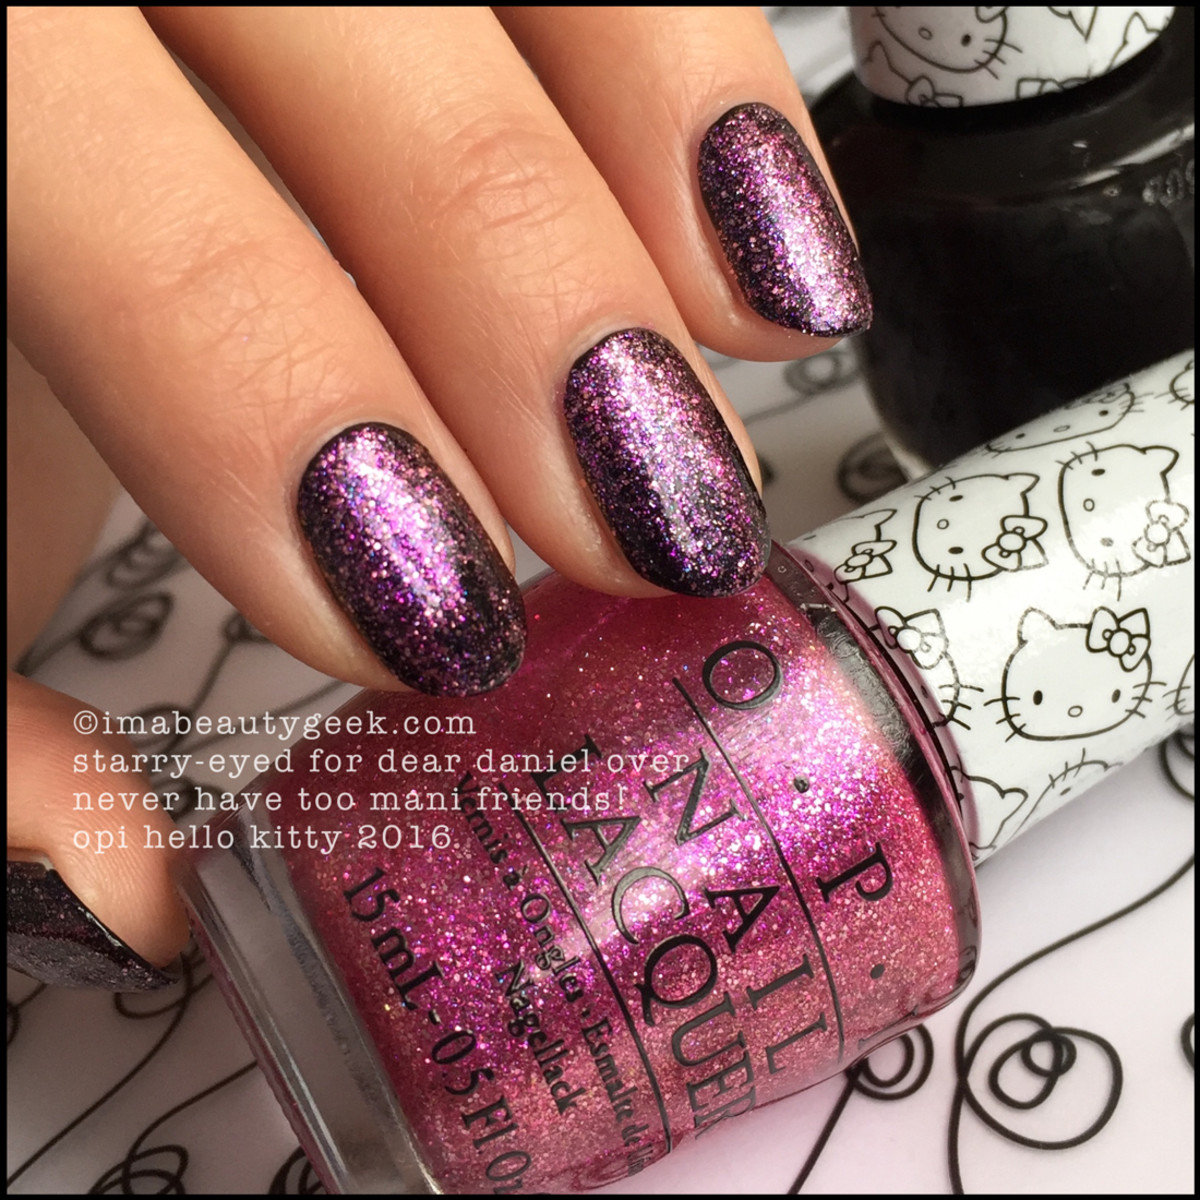 OPI Starry Eyed For Dear Daniel over Black_OPI Hello Kitty 2016 Swatches Review